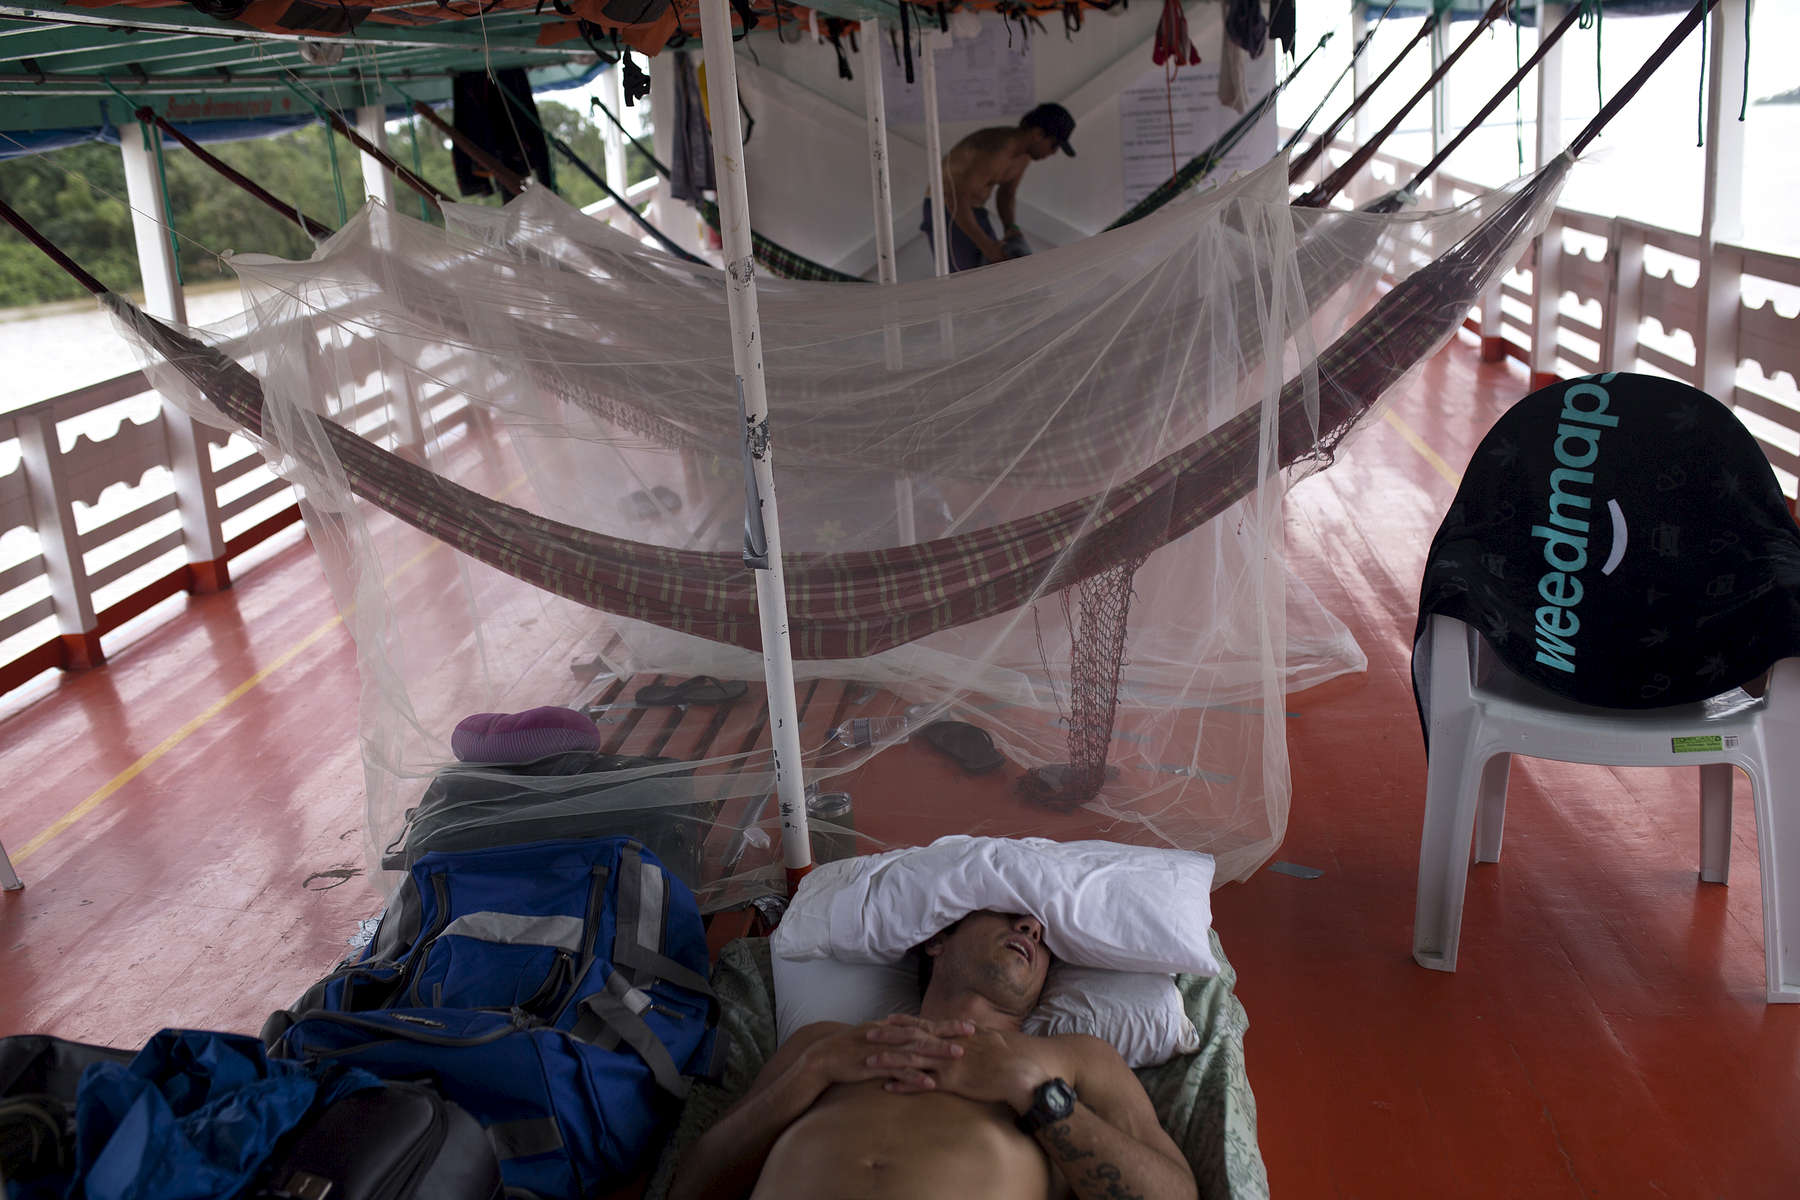 Surfer Ivan Moreira takes a nap on the boat. Serginho Laus gets into his hammock in the background.